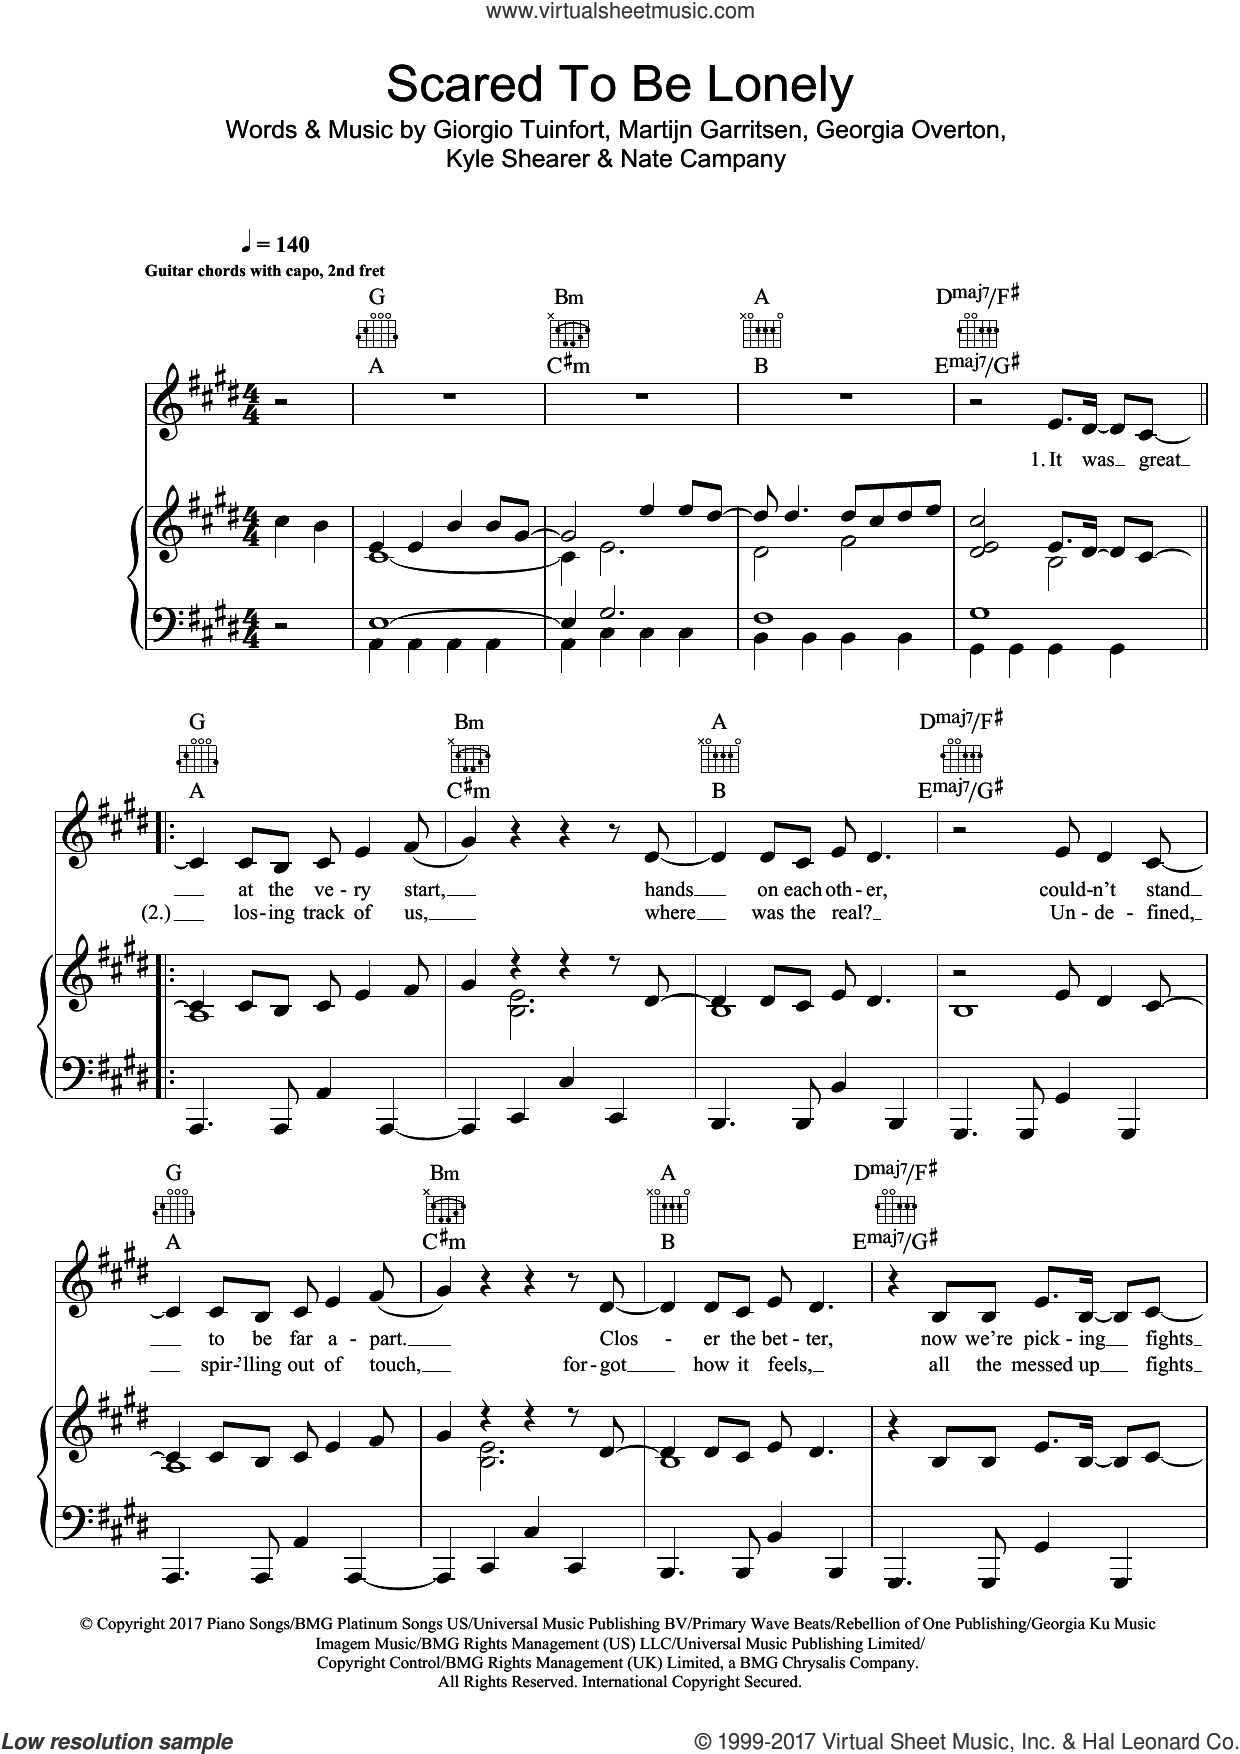 Scared To Be Lonely sheet music for voice, piano or guitar by Martin Garrix and Dua Lipa, intermediate skill level